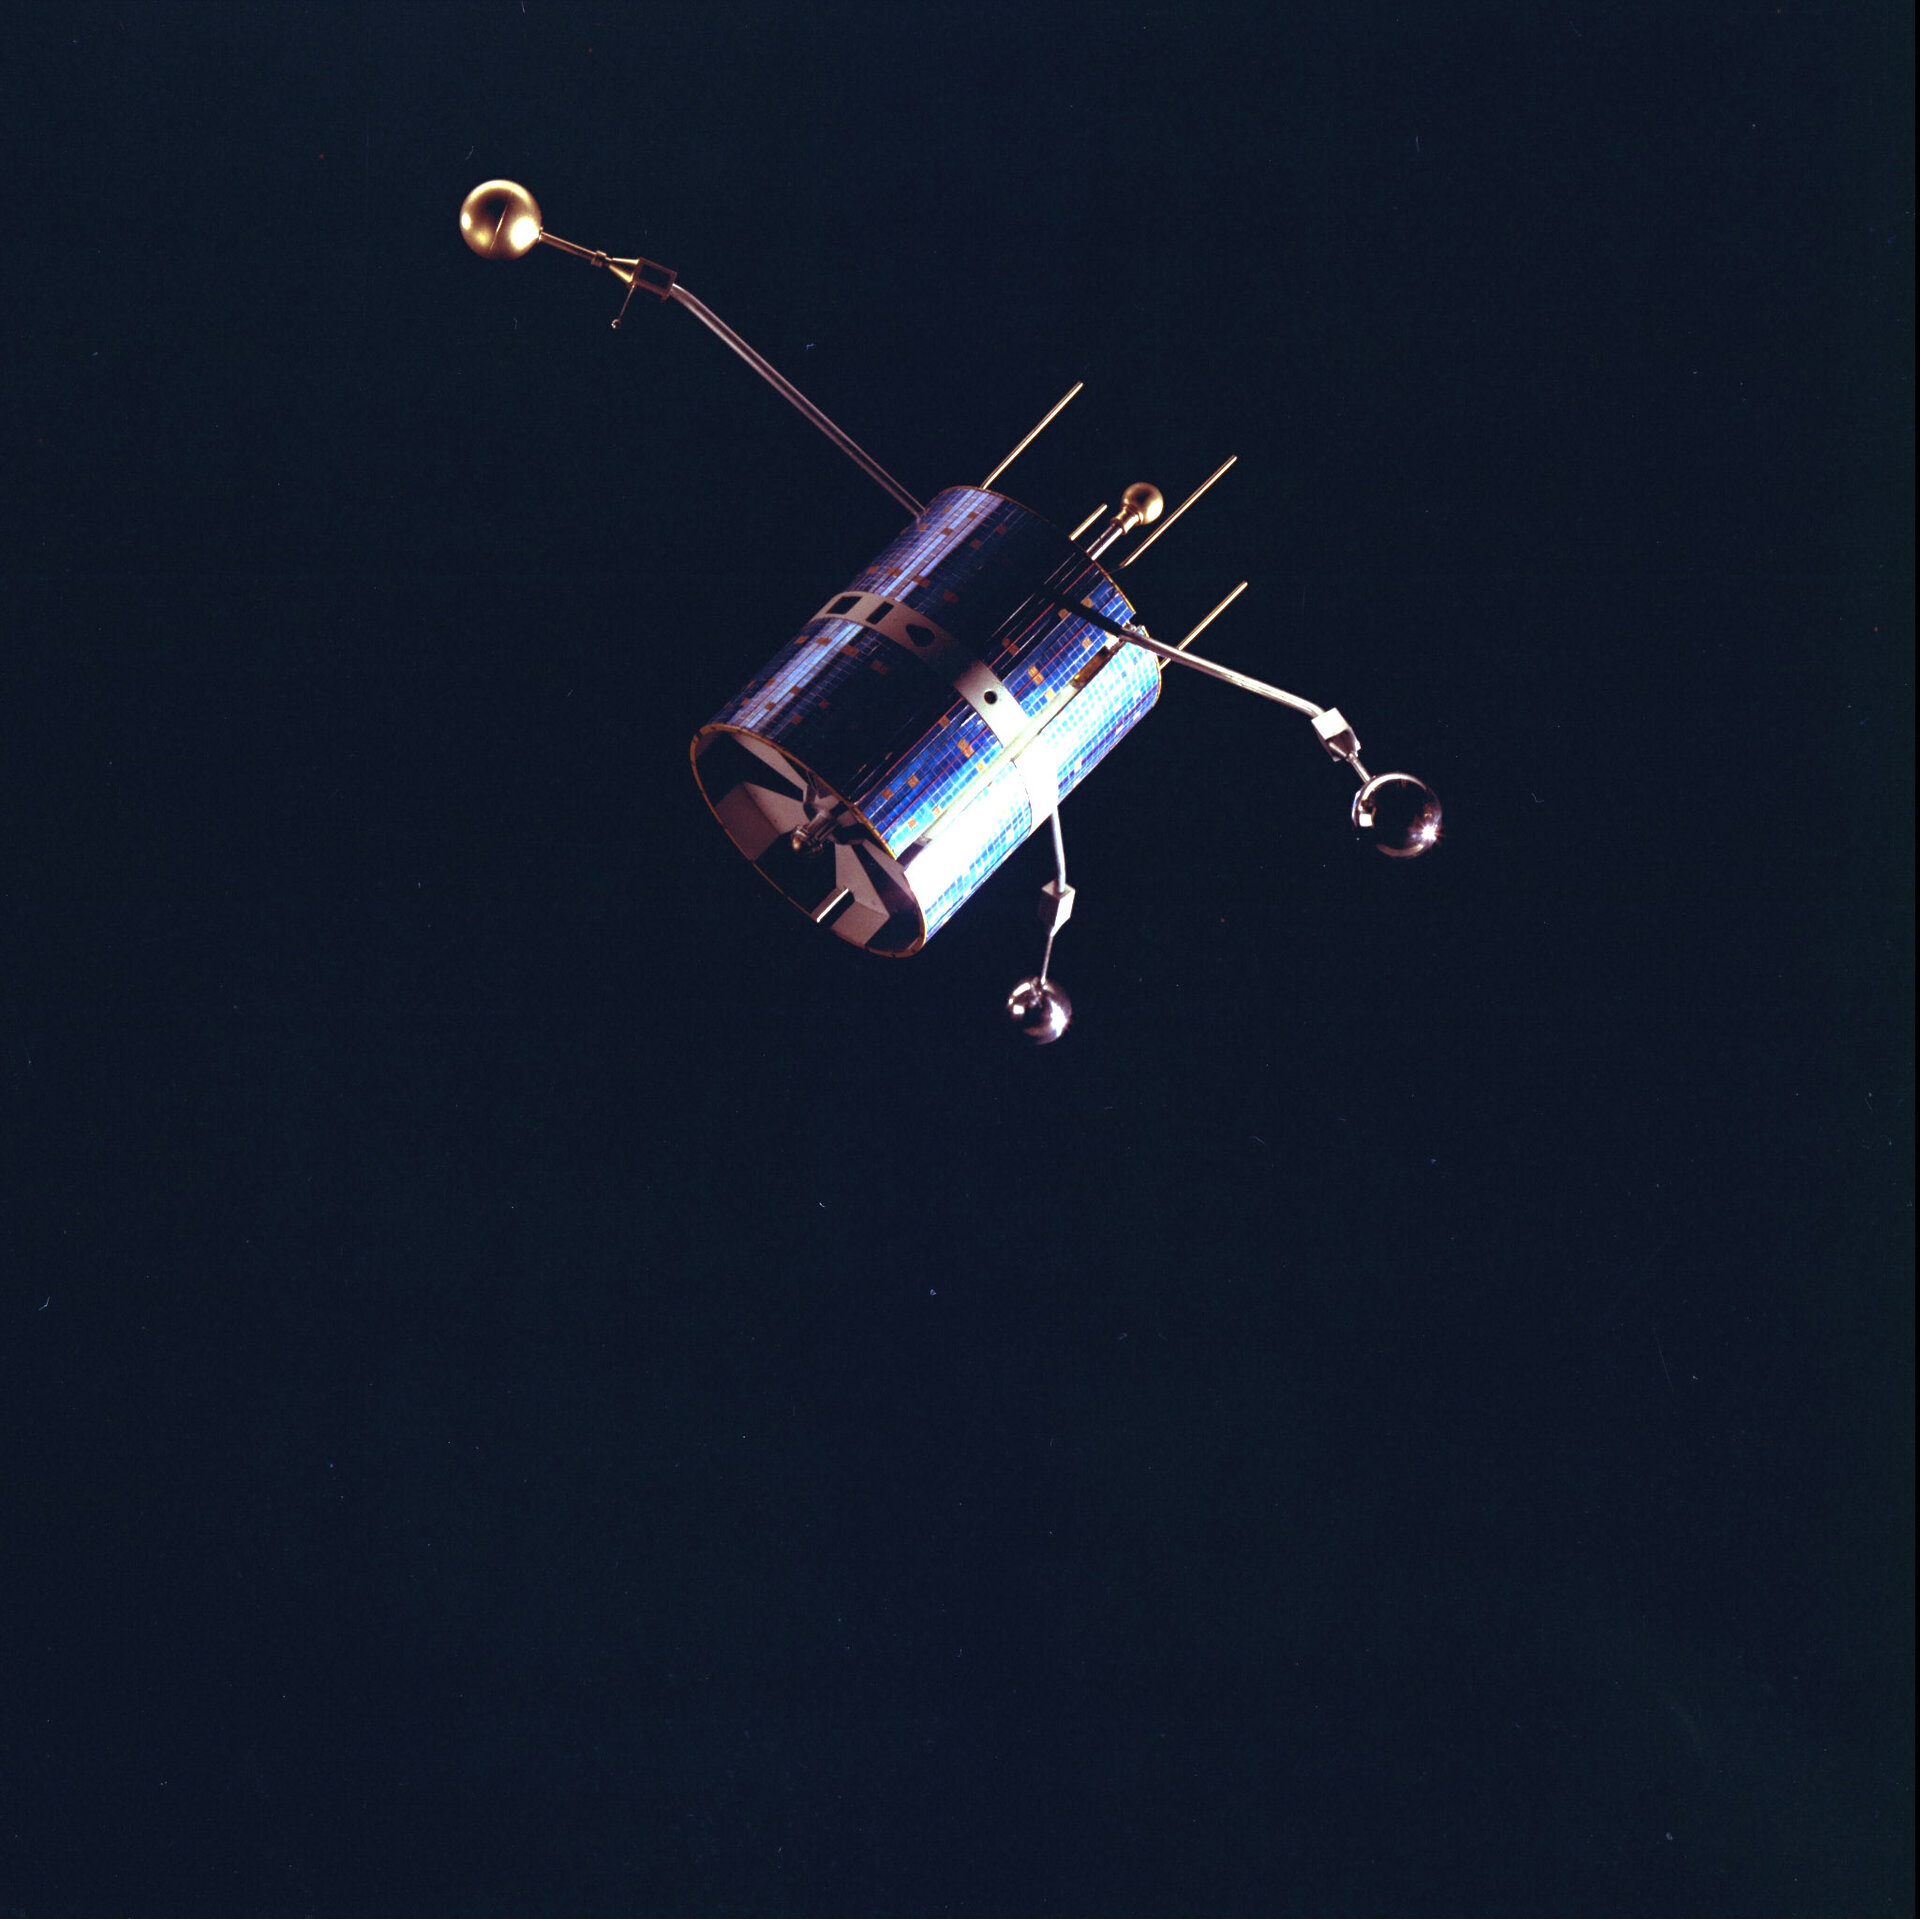 An artist's impression of ESRO-4 in orbit